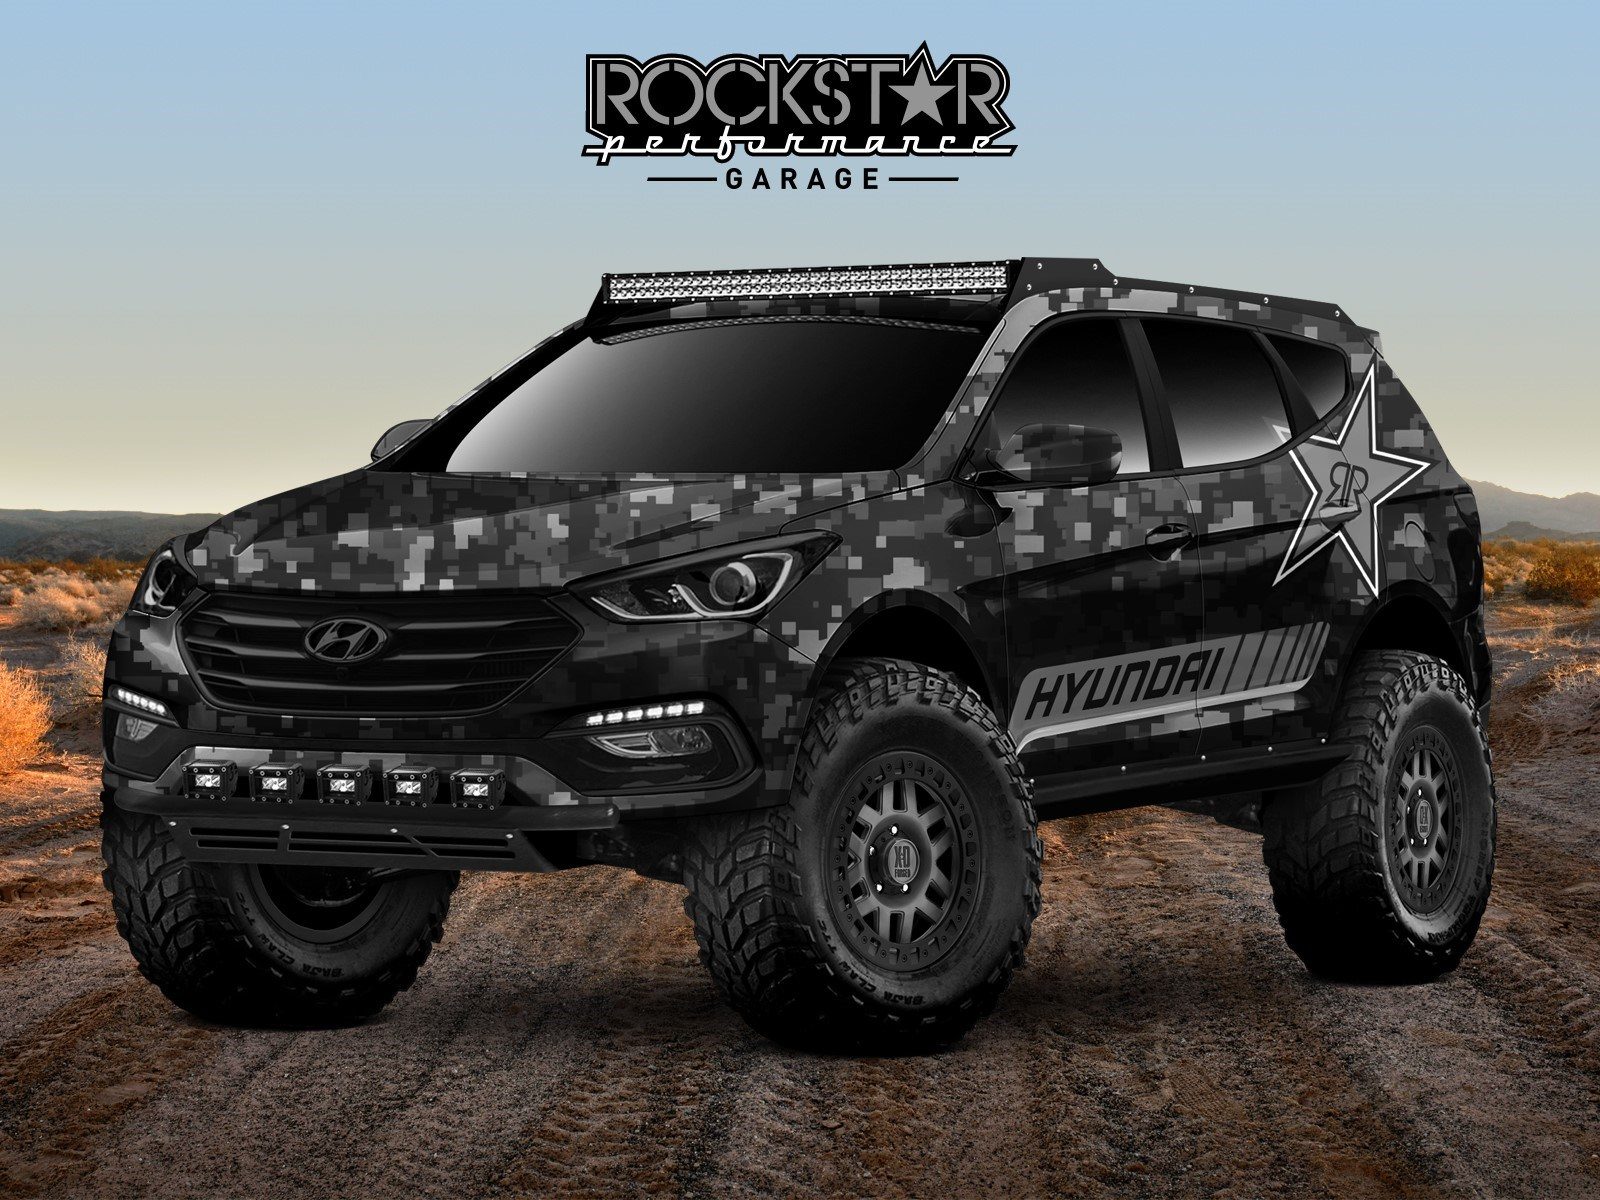 HYUNDAI ENERGIZES THE 2017 SEMA SHOW WITH ROCKSTAR ENERGY MOAB EXTREME OFF-ROADER SANTA FE SPORT CONCEPT